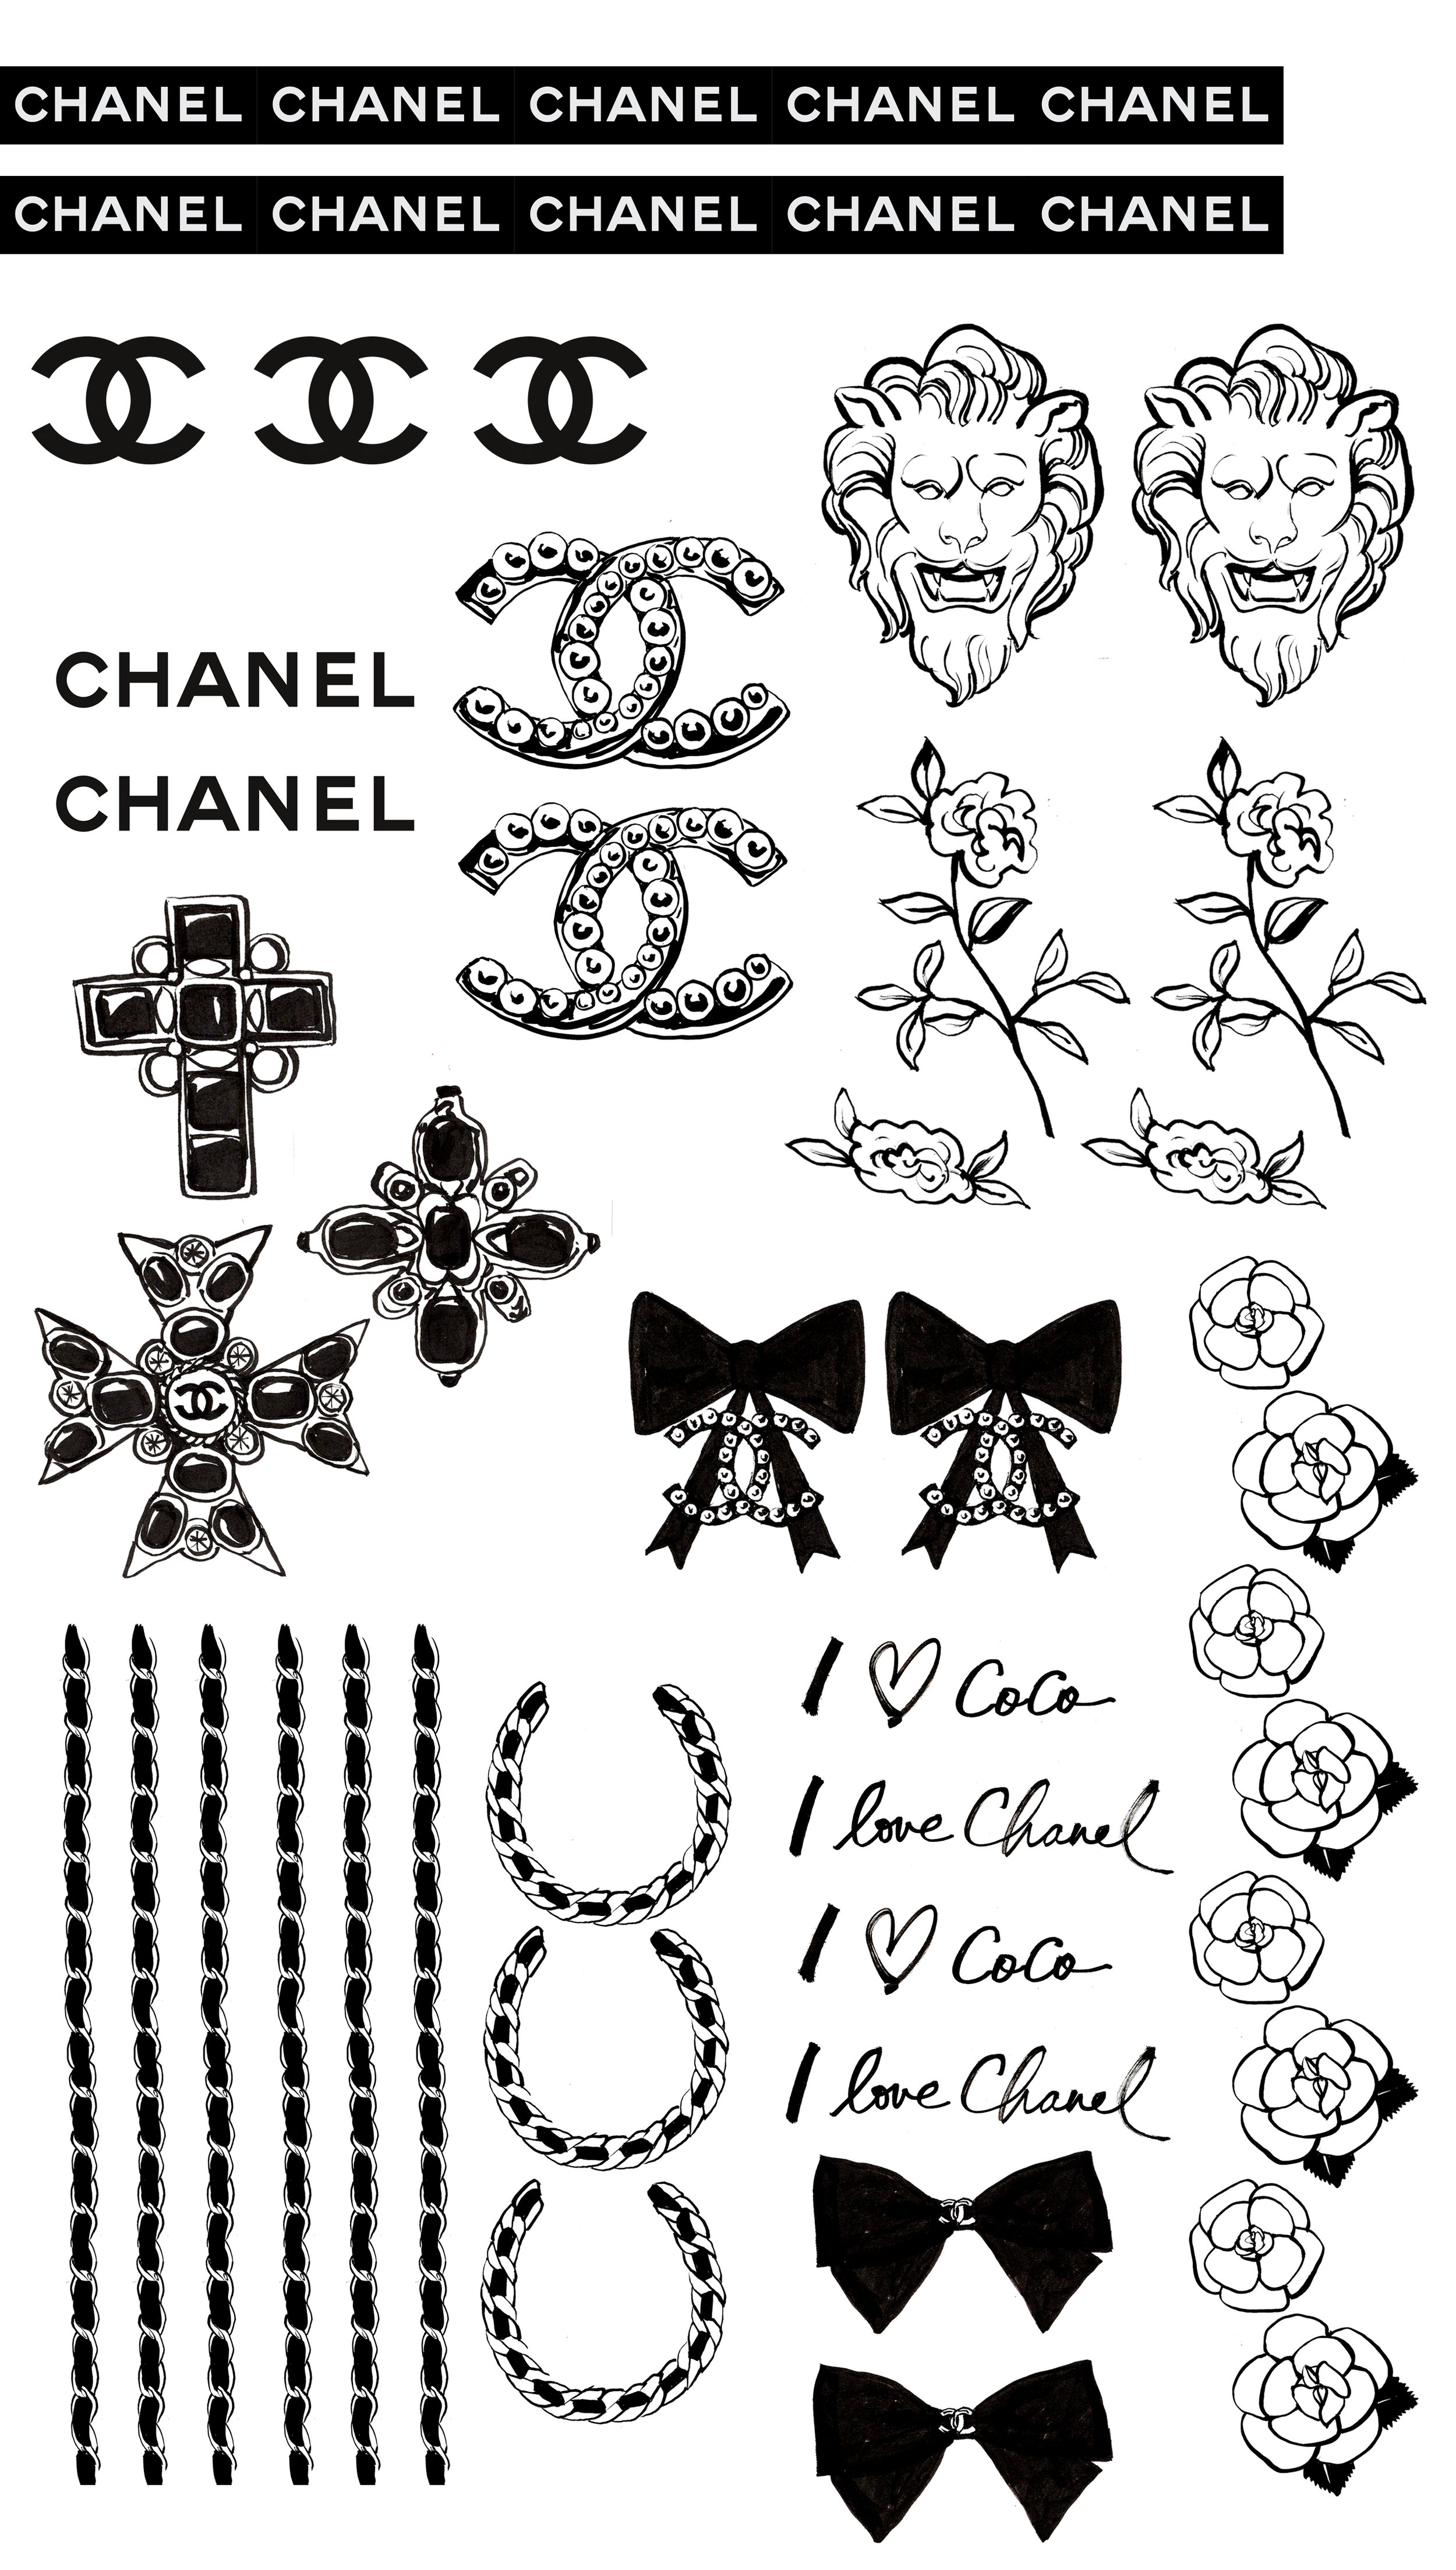 Chanel Nail Decals_ Illustrated by RY.jpg